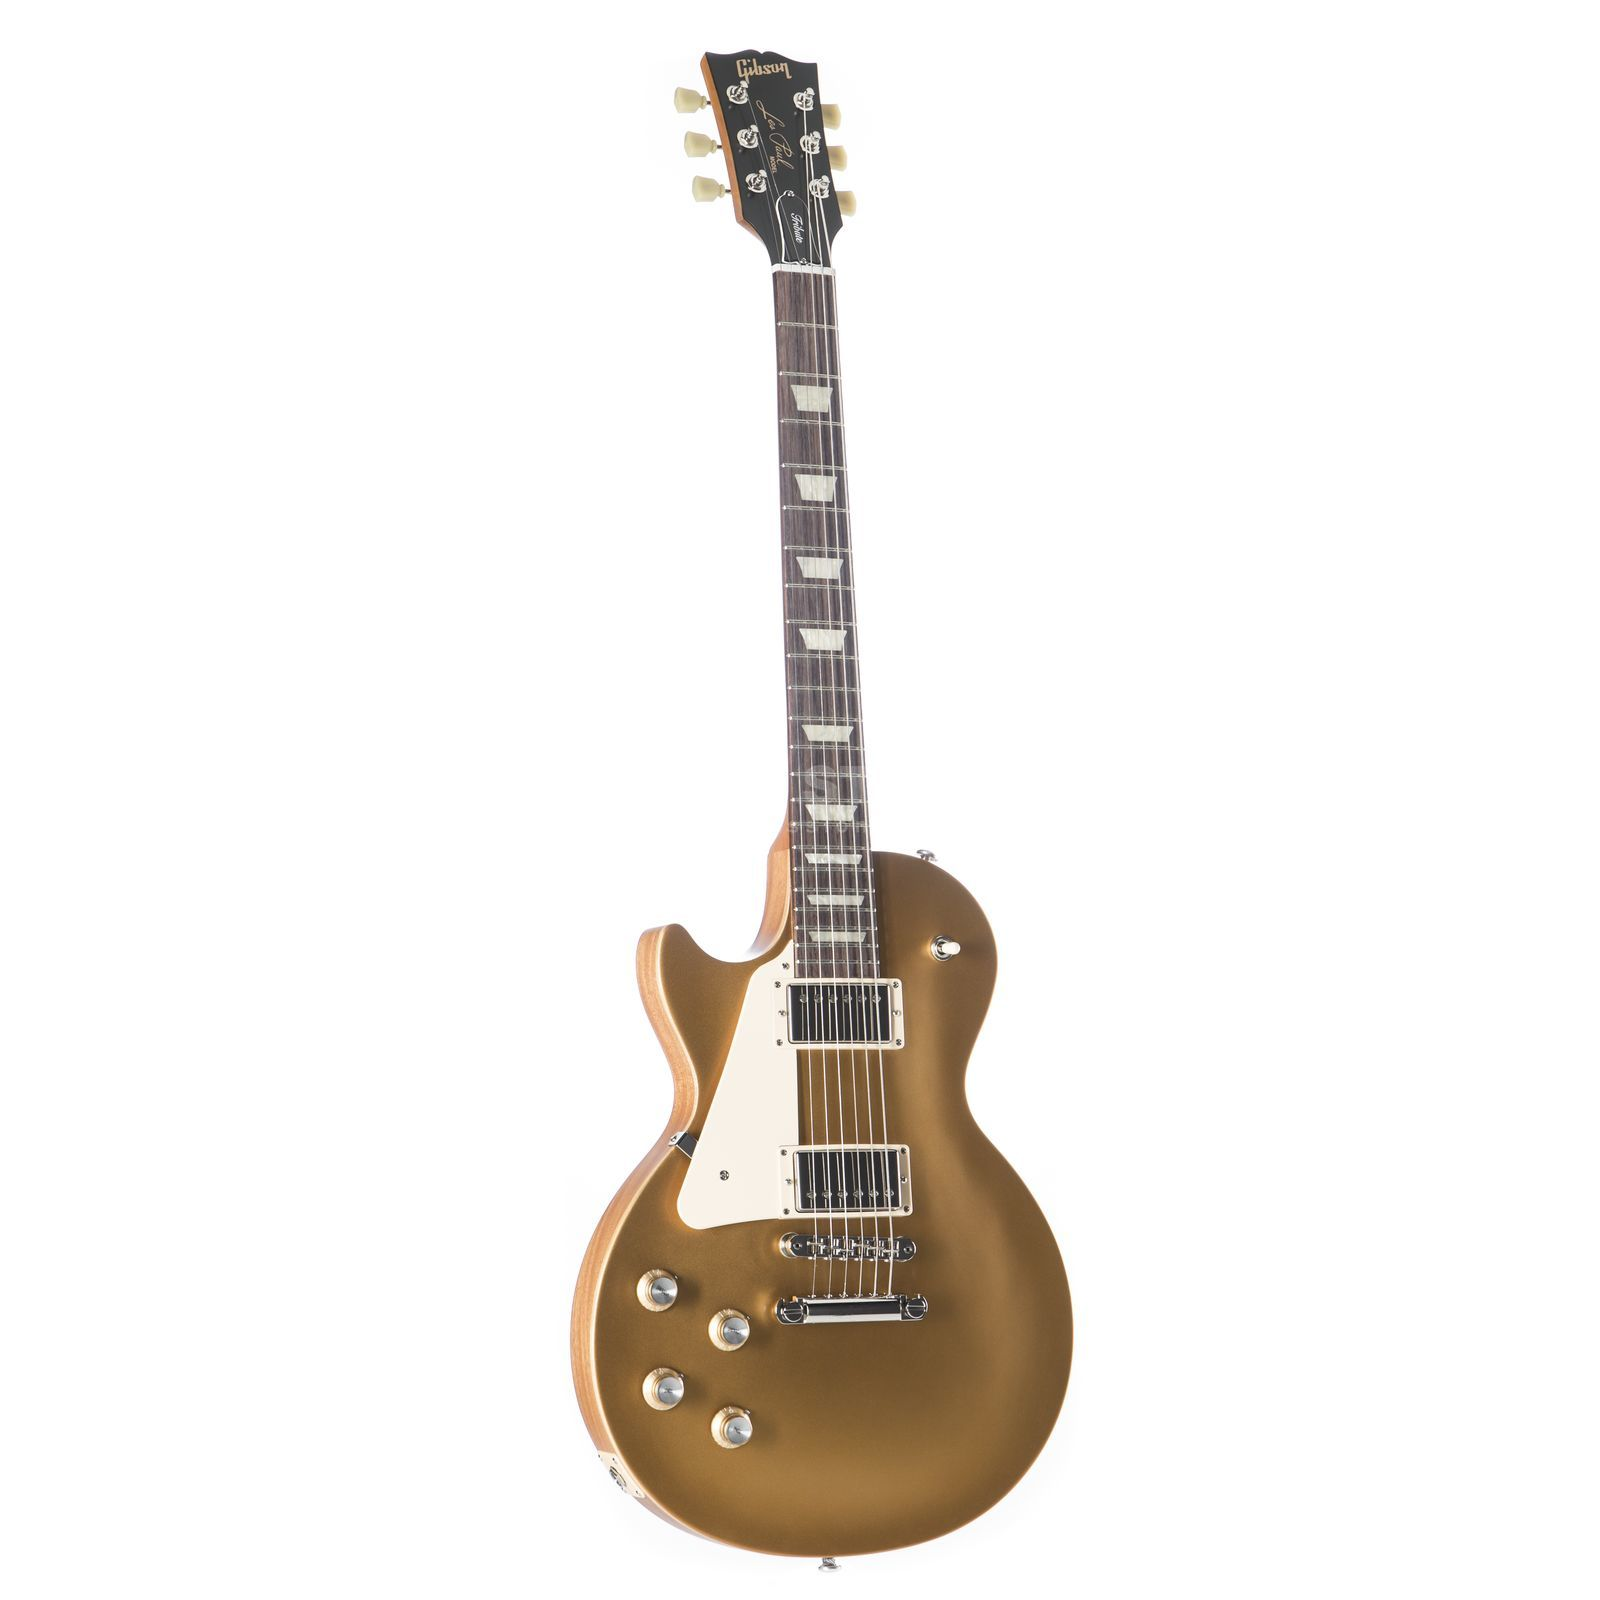 Gibson Les Paul Tribute 2018 Lefthand Satin Gold Top Imagen del producto